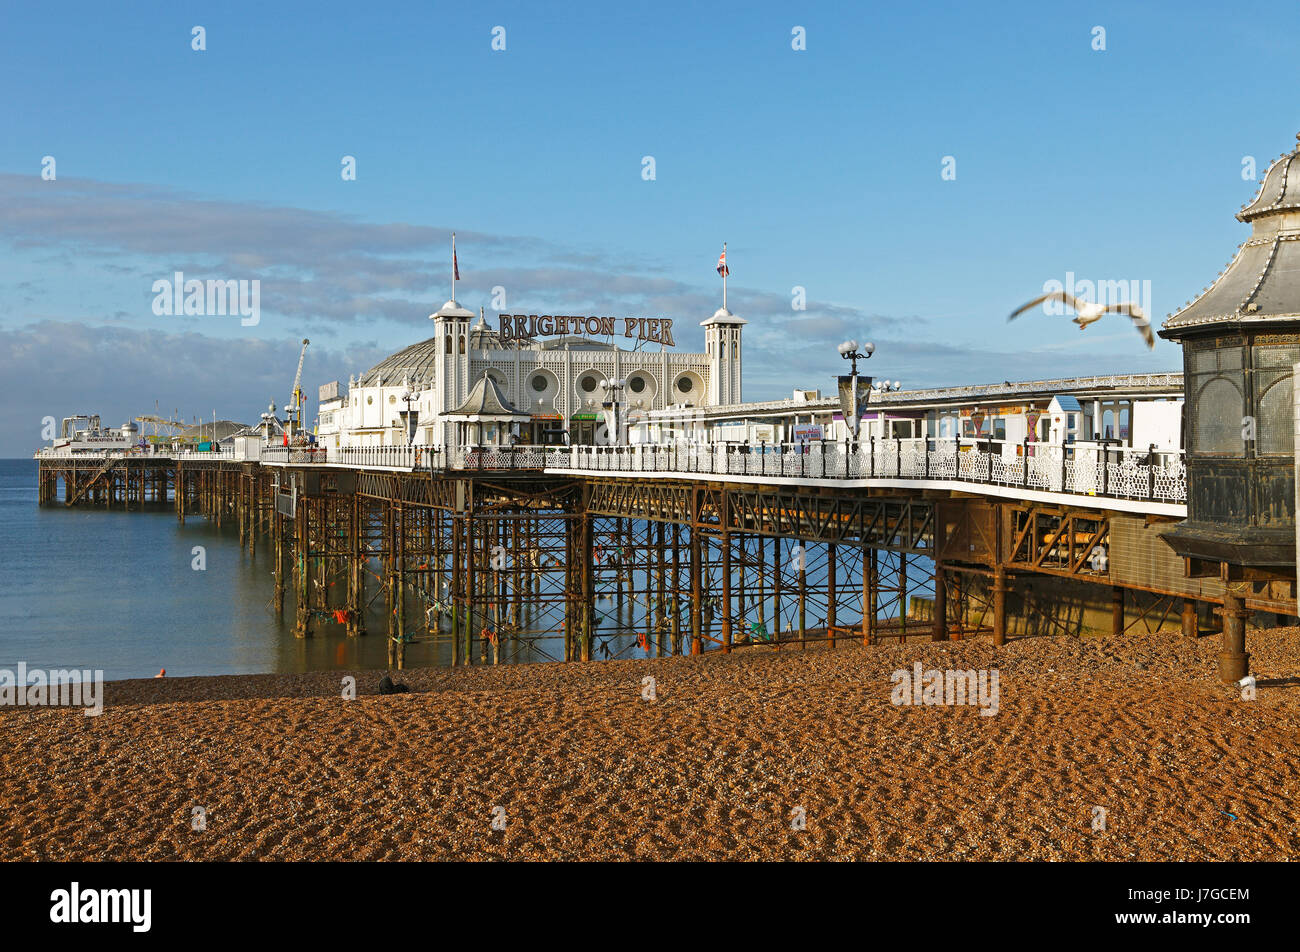 Palace Pier de Brighton, Brighton, East Sussex, Angleterre, Royaume-Uni Banque D'Images